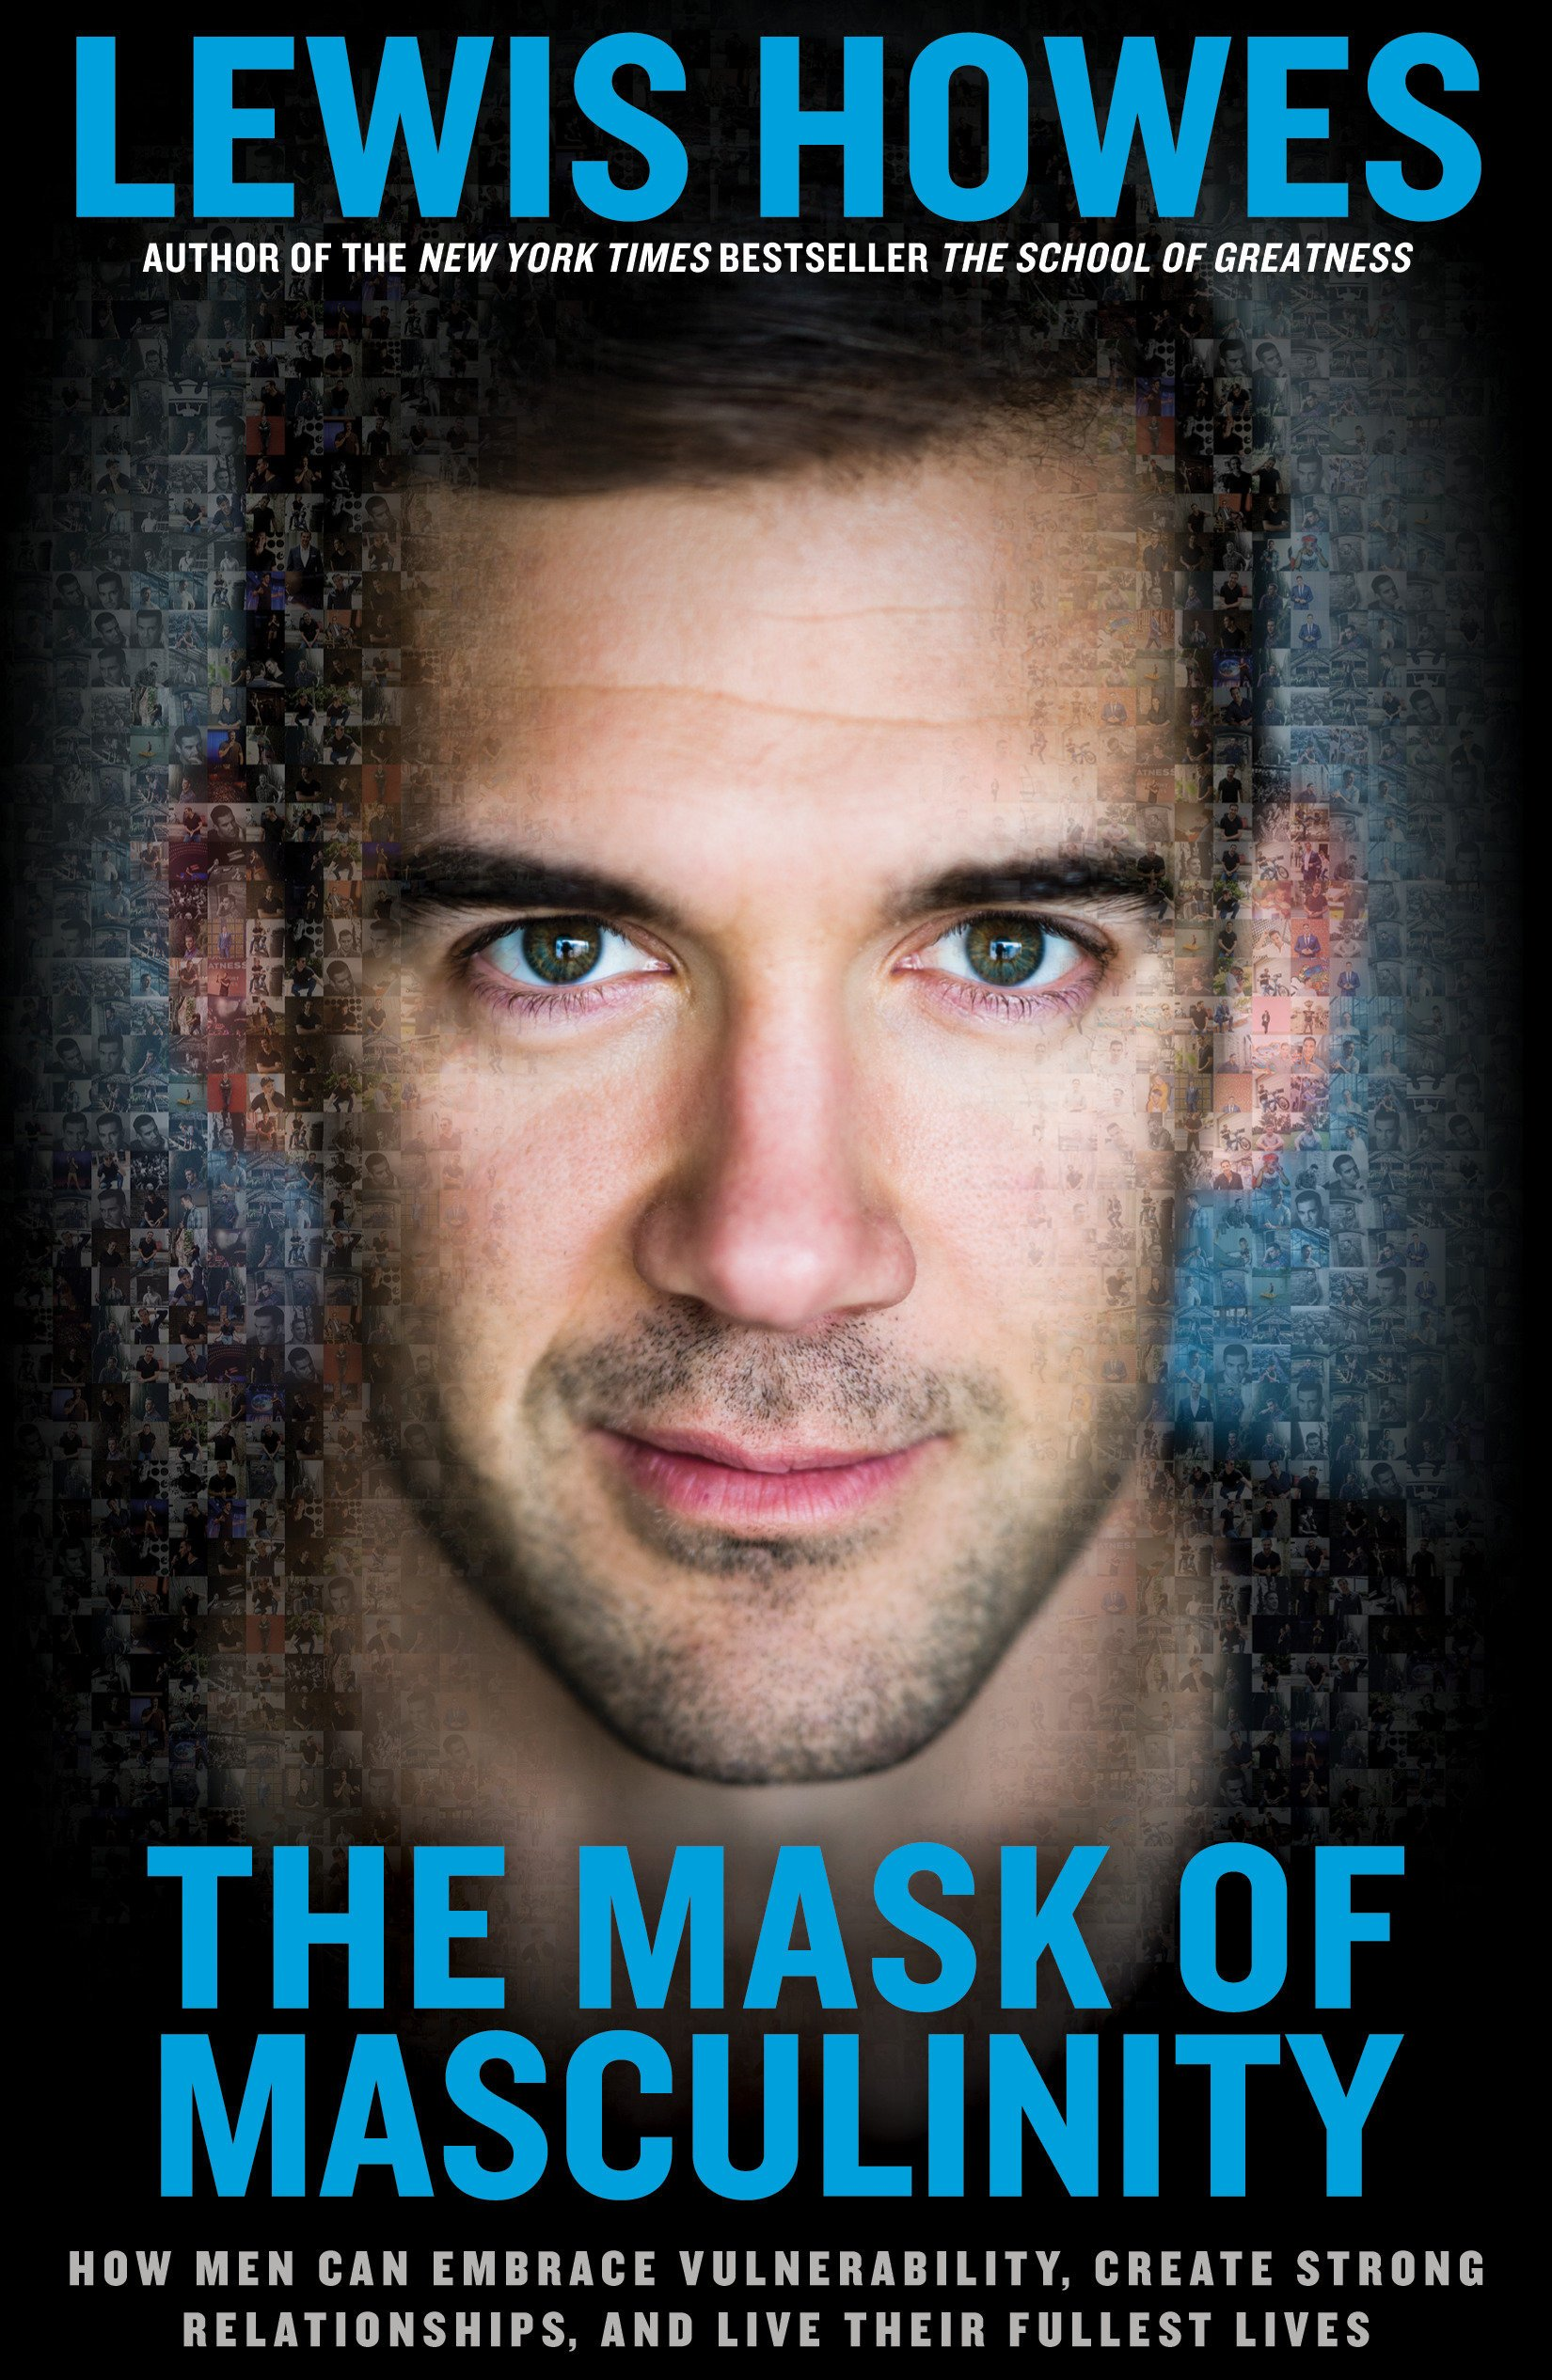 The Mask of Masculinity: How Men Can Embrace Vulnerability, Create Strong Relationships, and Live Their Fullest Lives: Amazon.es: Lewis Howes: Libros en ...